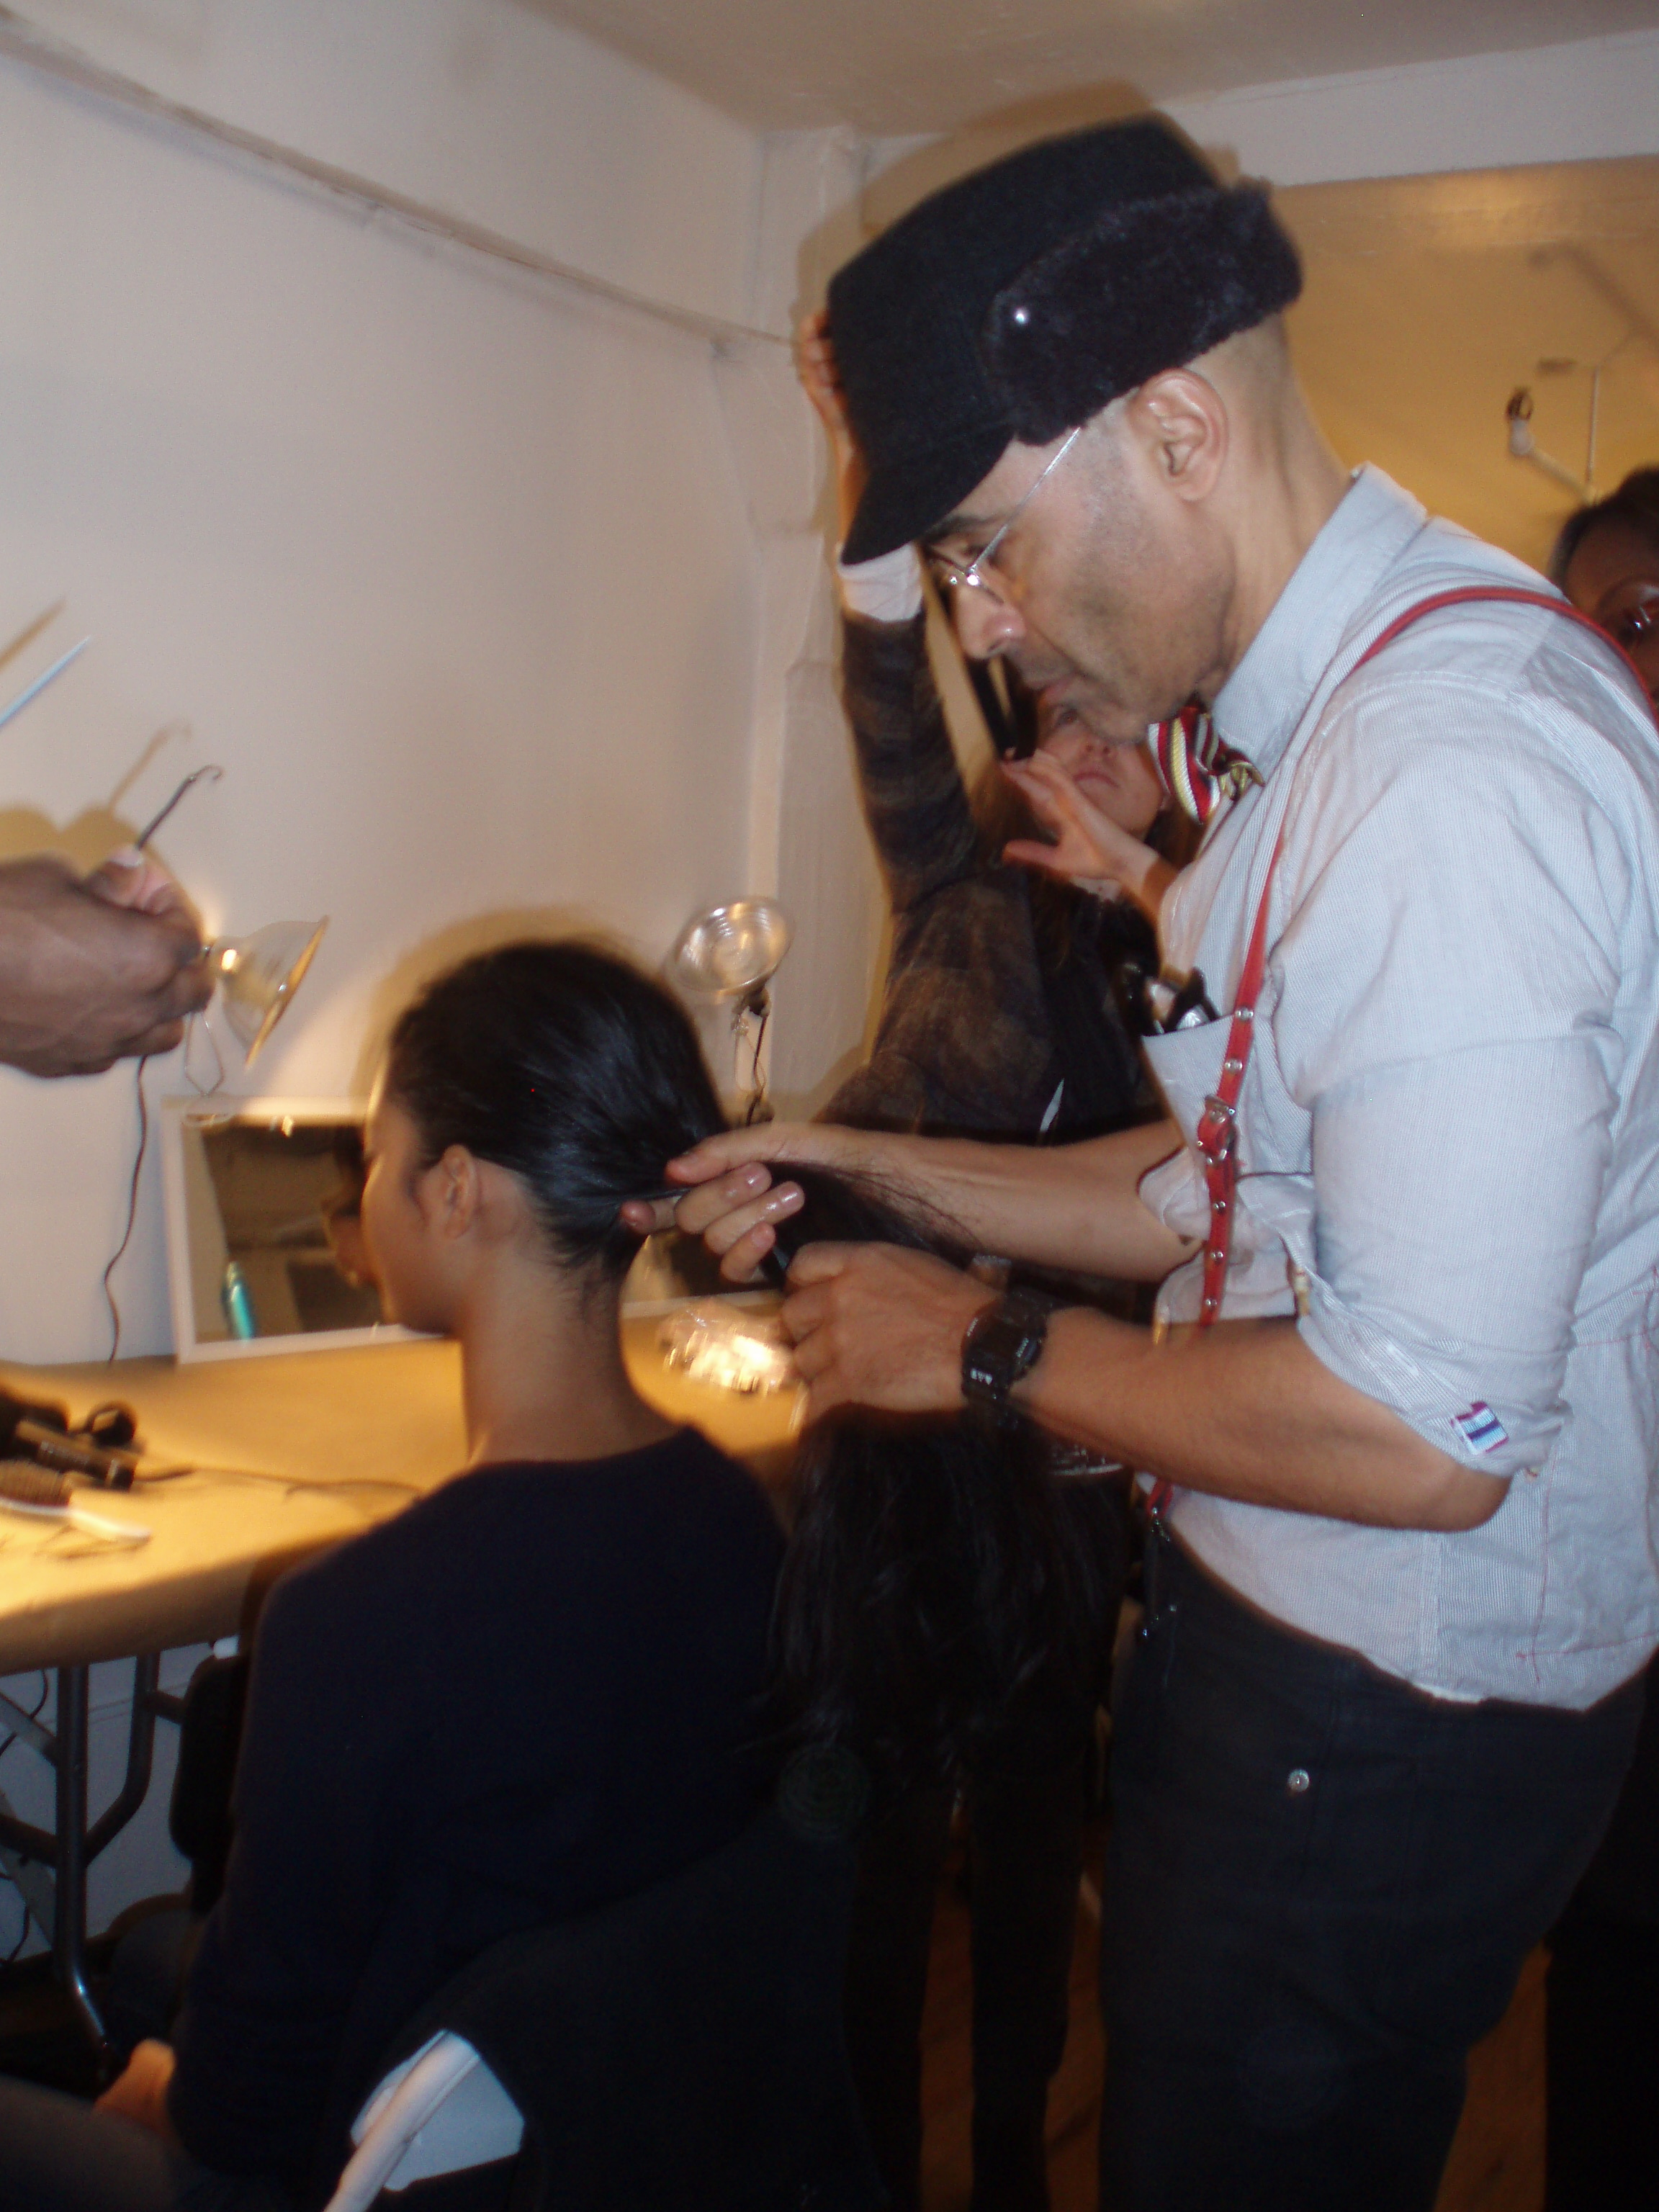 Rolando Beauchamp for Bumble and bumble styles a ponytail.